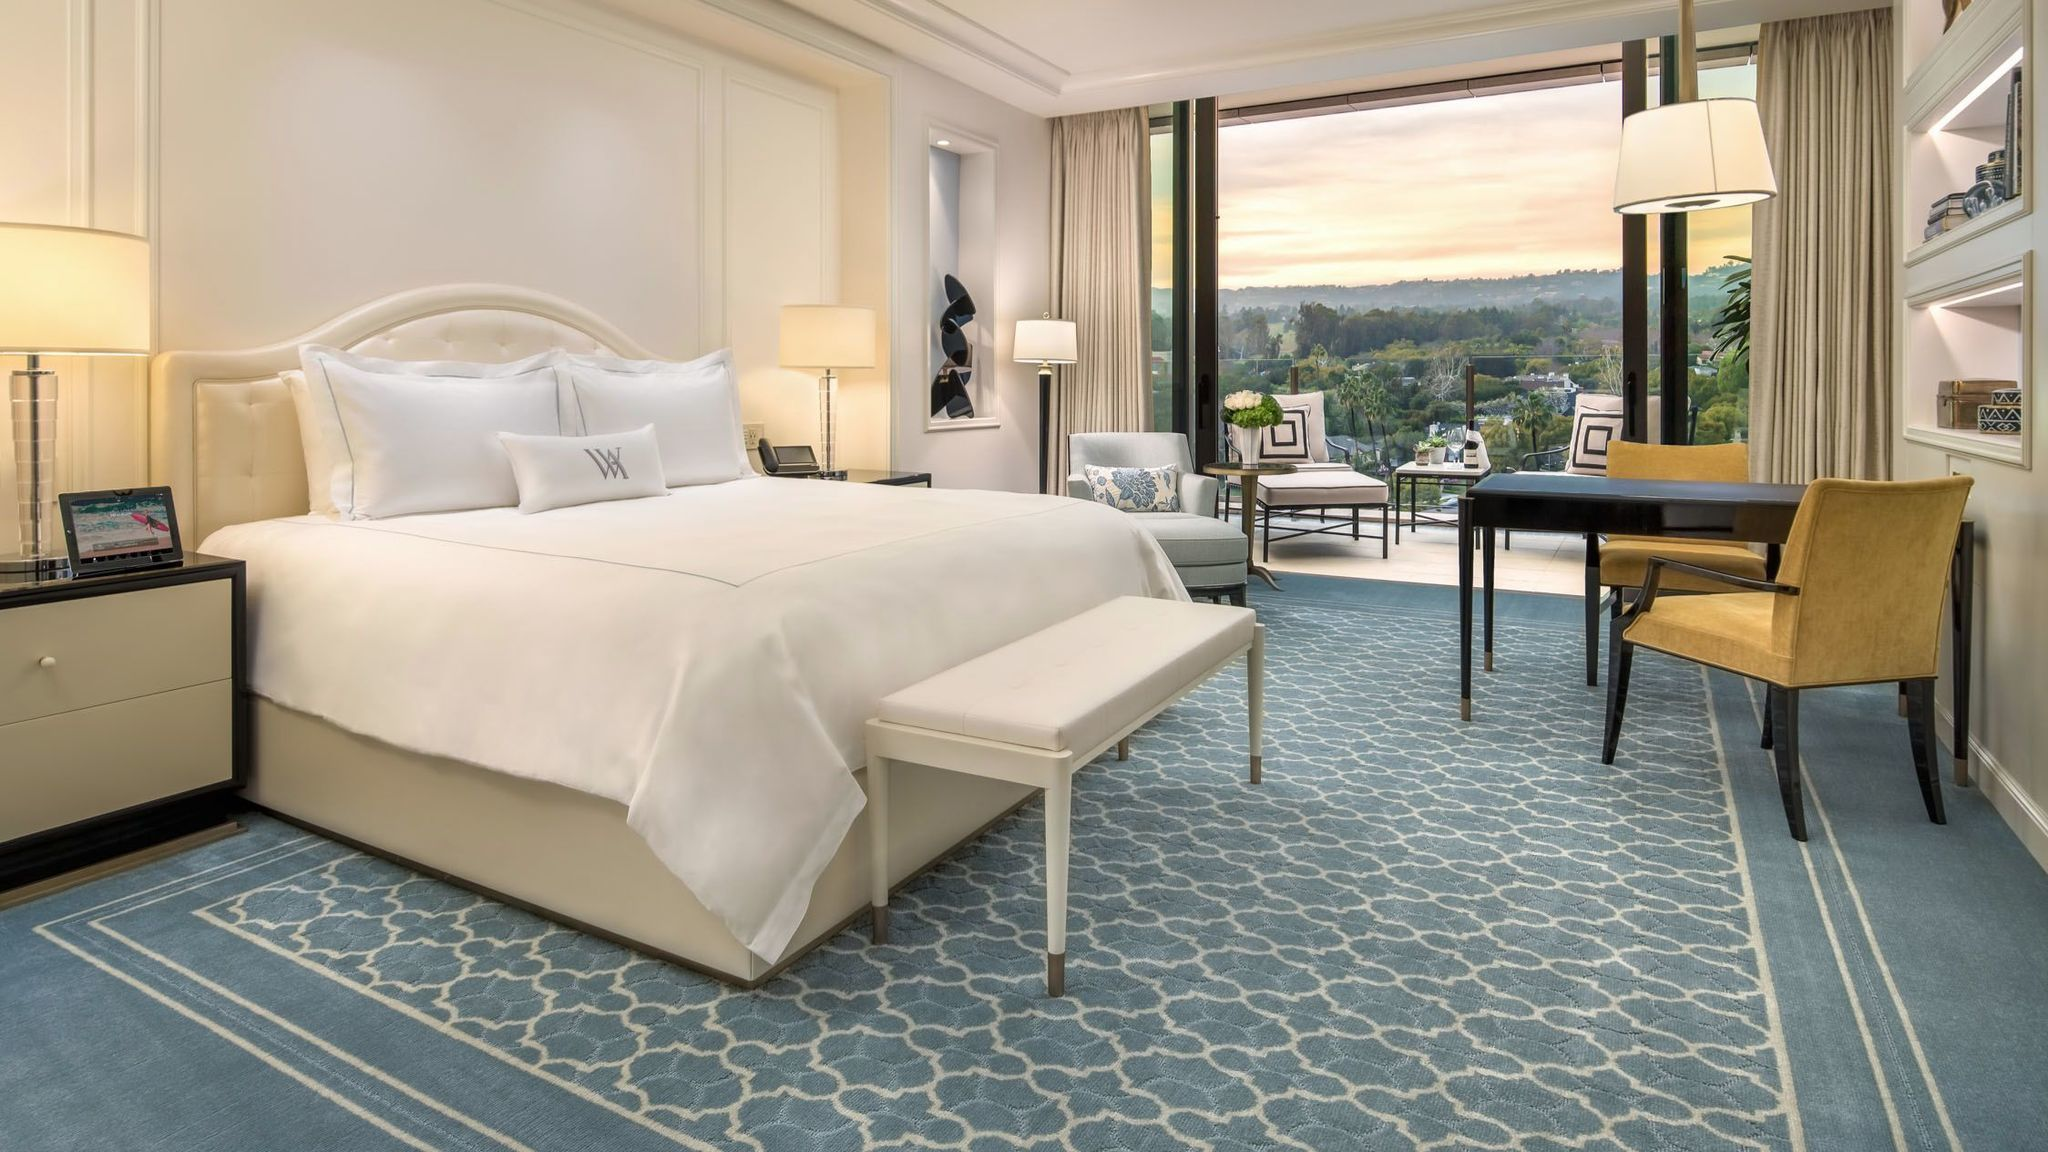 Interior Designers Beverly Hills A Look Inside The Soontoopen Waldorf Astoria Beverly Hills  La